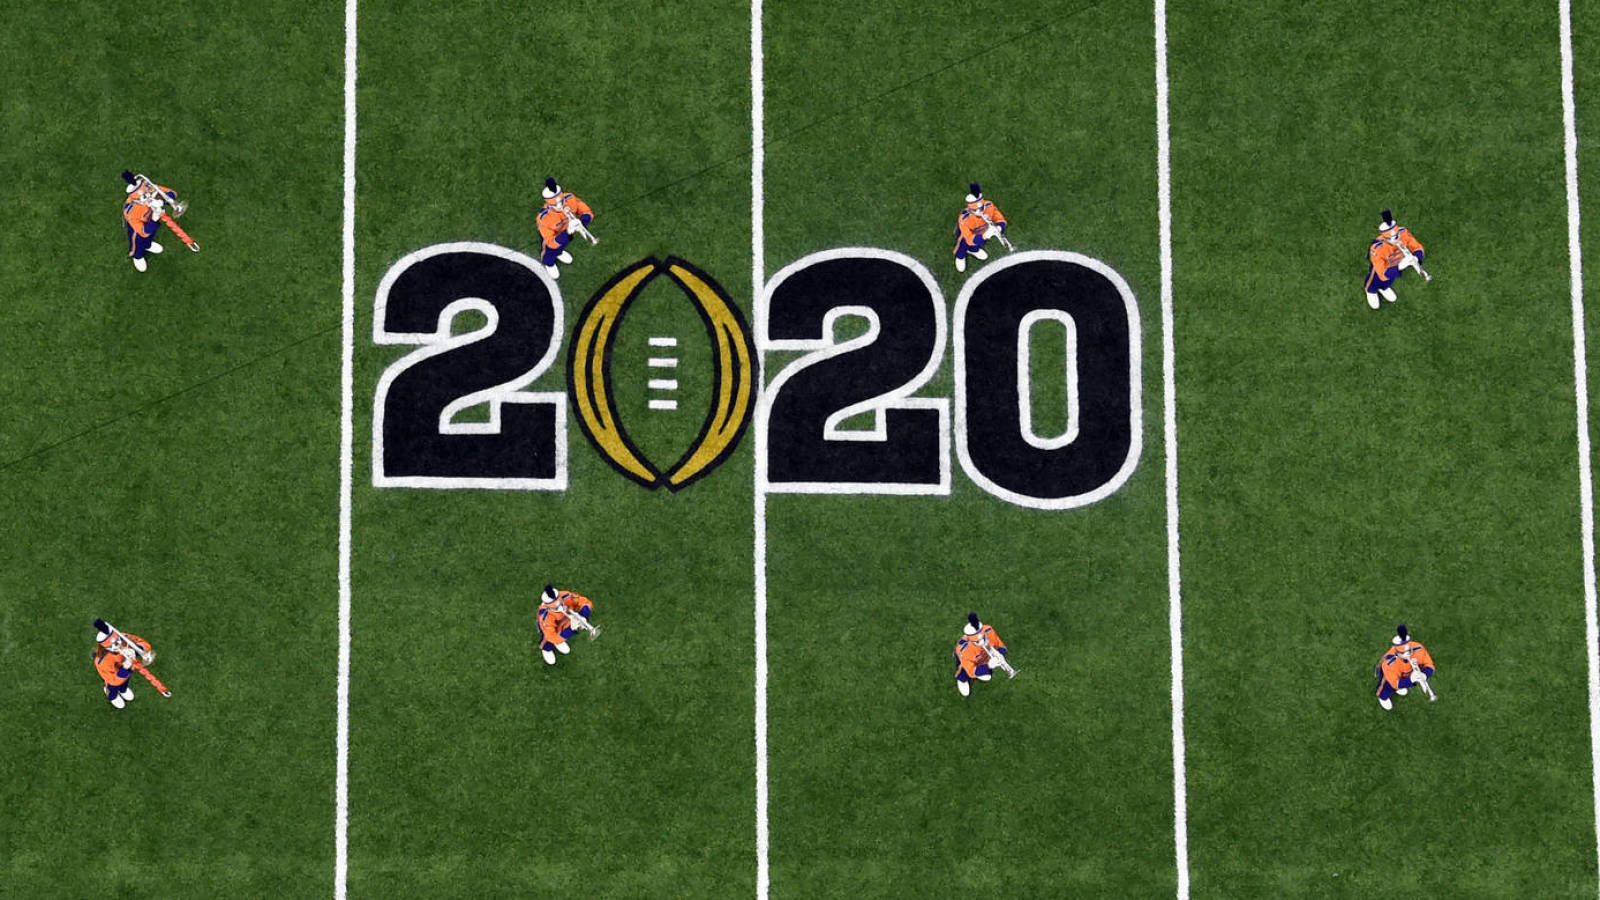 'Increased momentum' to move 2020 college football season to spring?